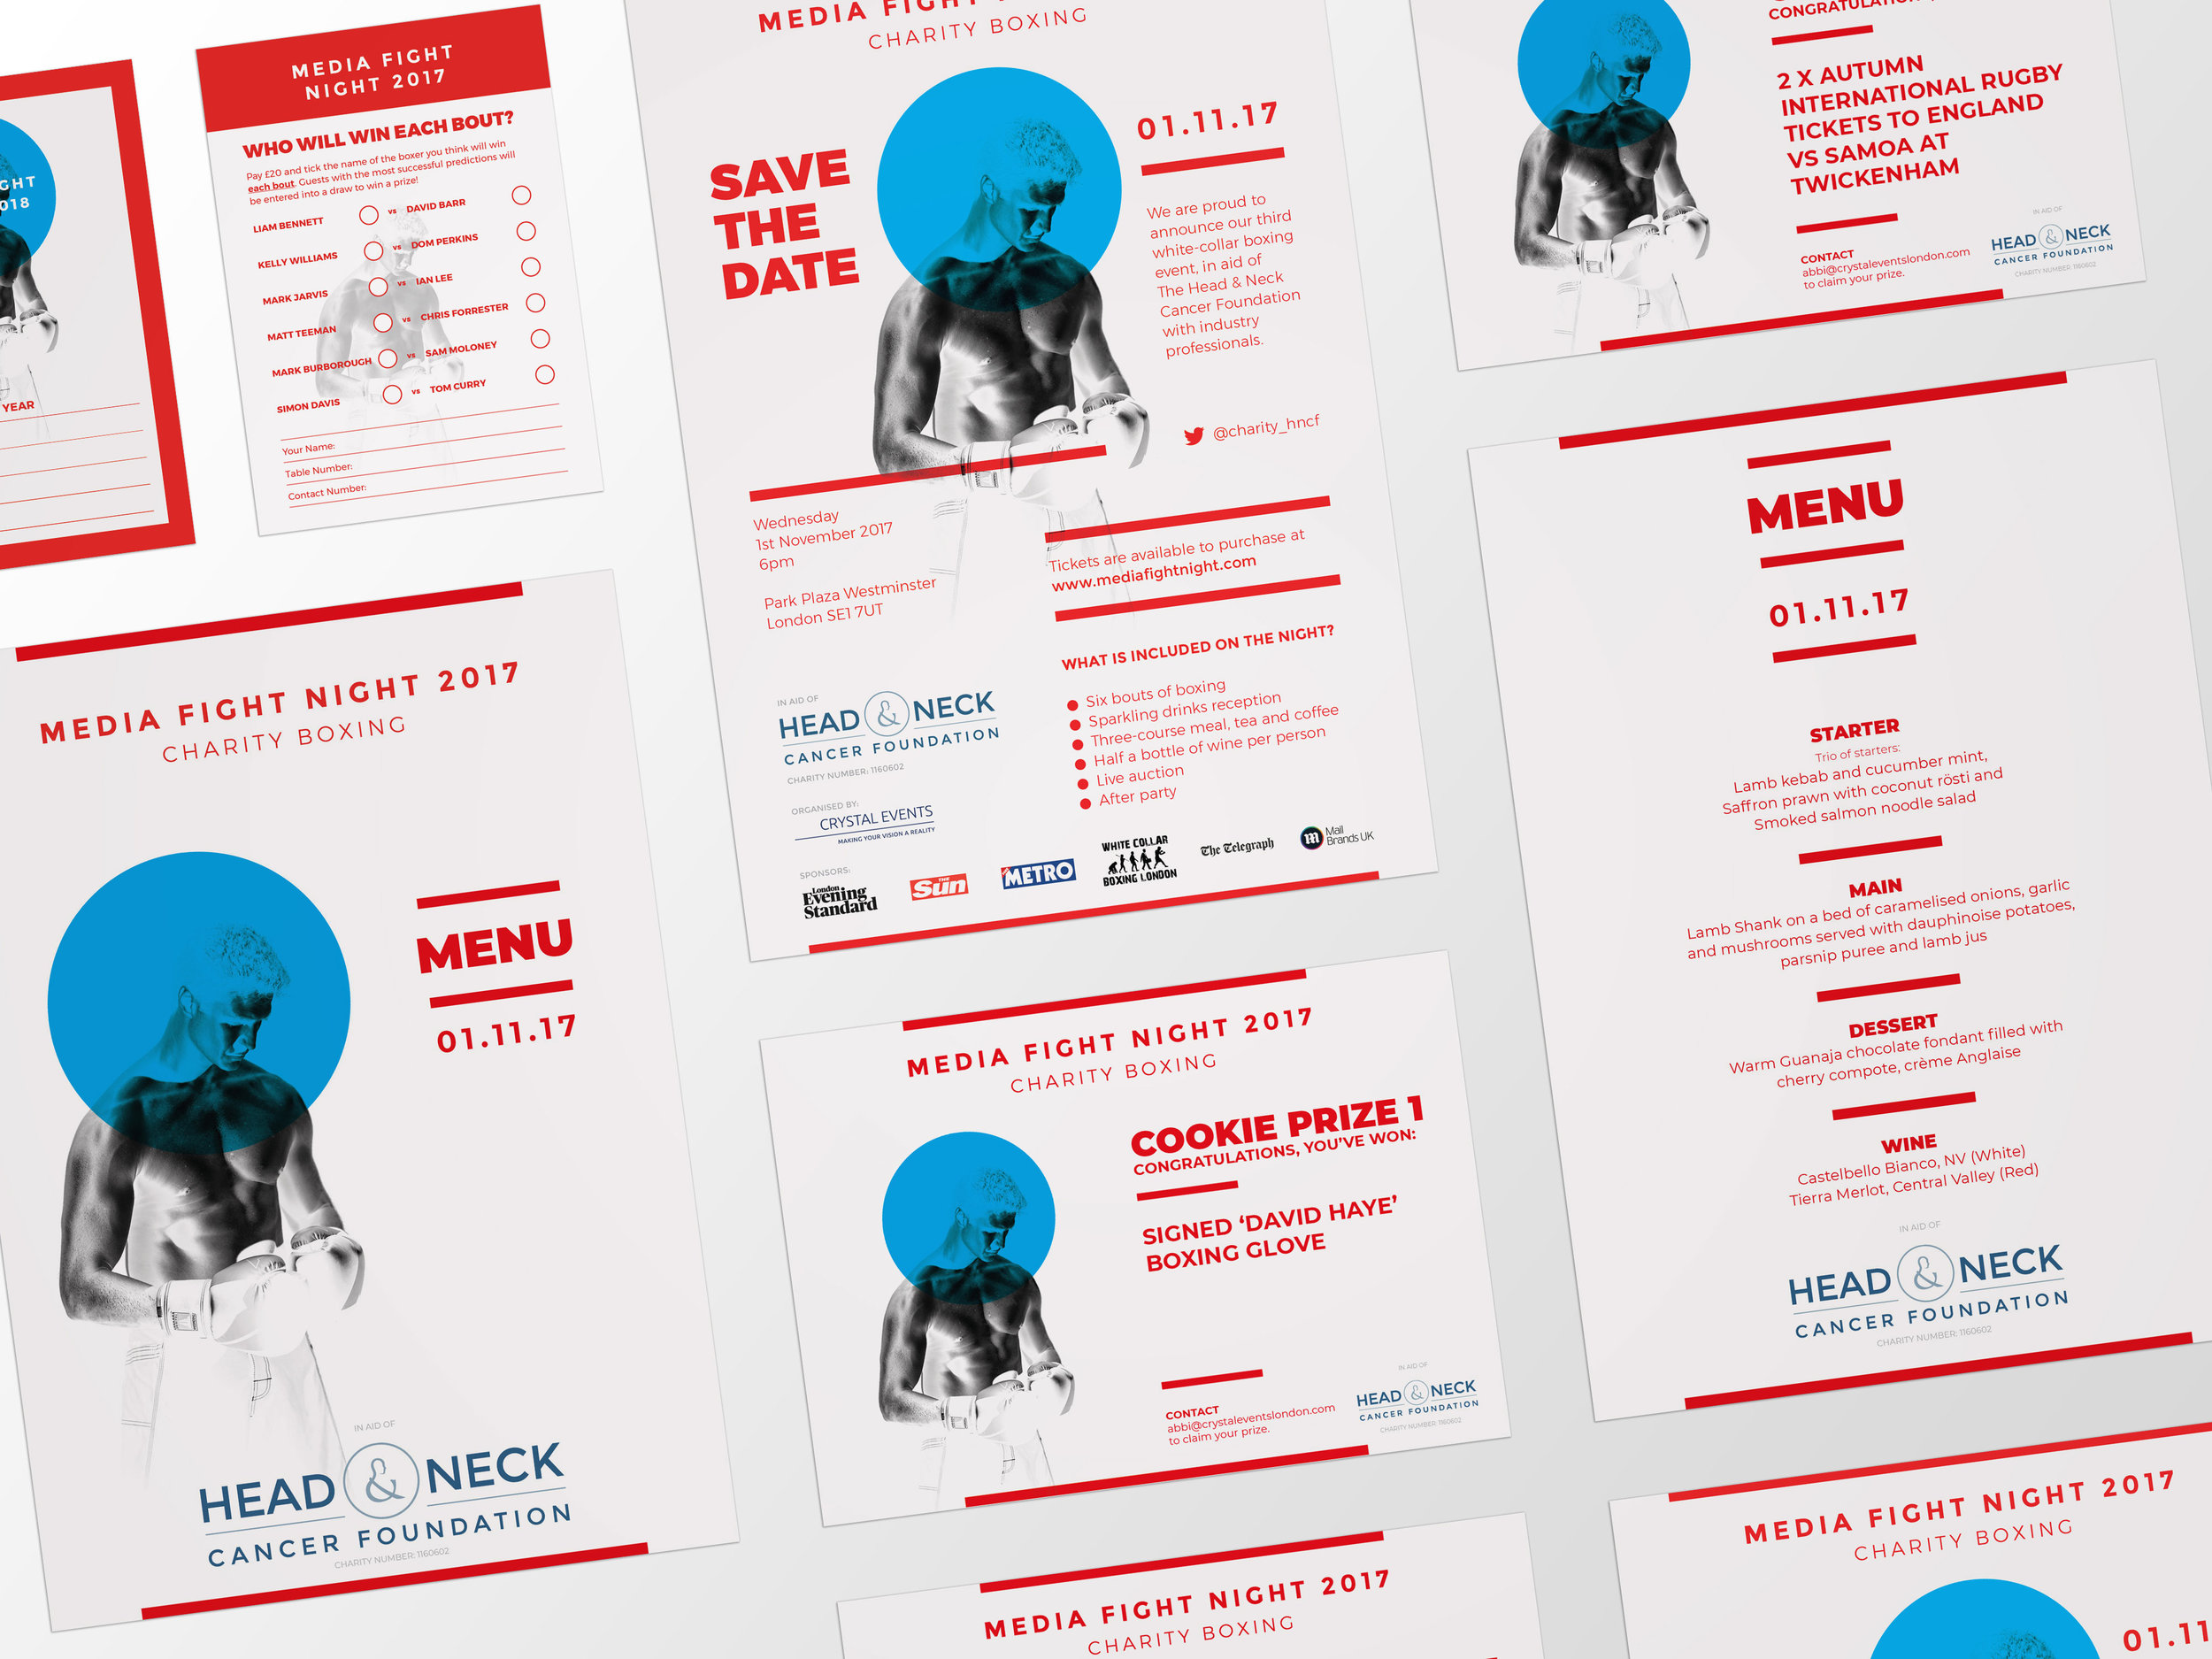 charity-boxing-print-materials-by-also-agency-1-LR.jpg